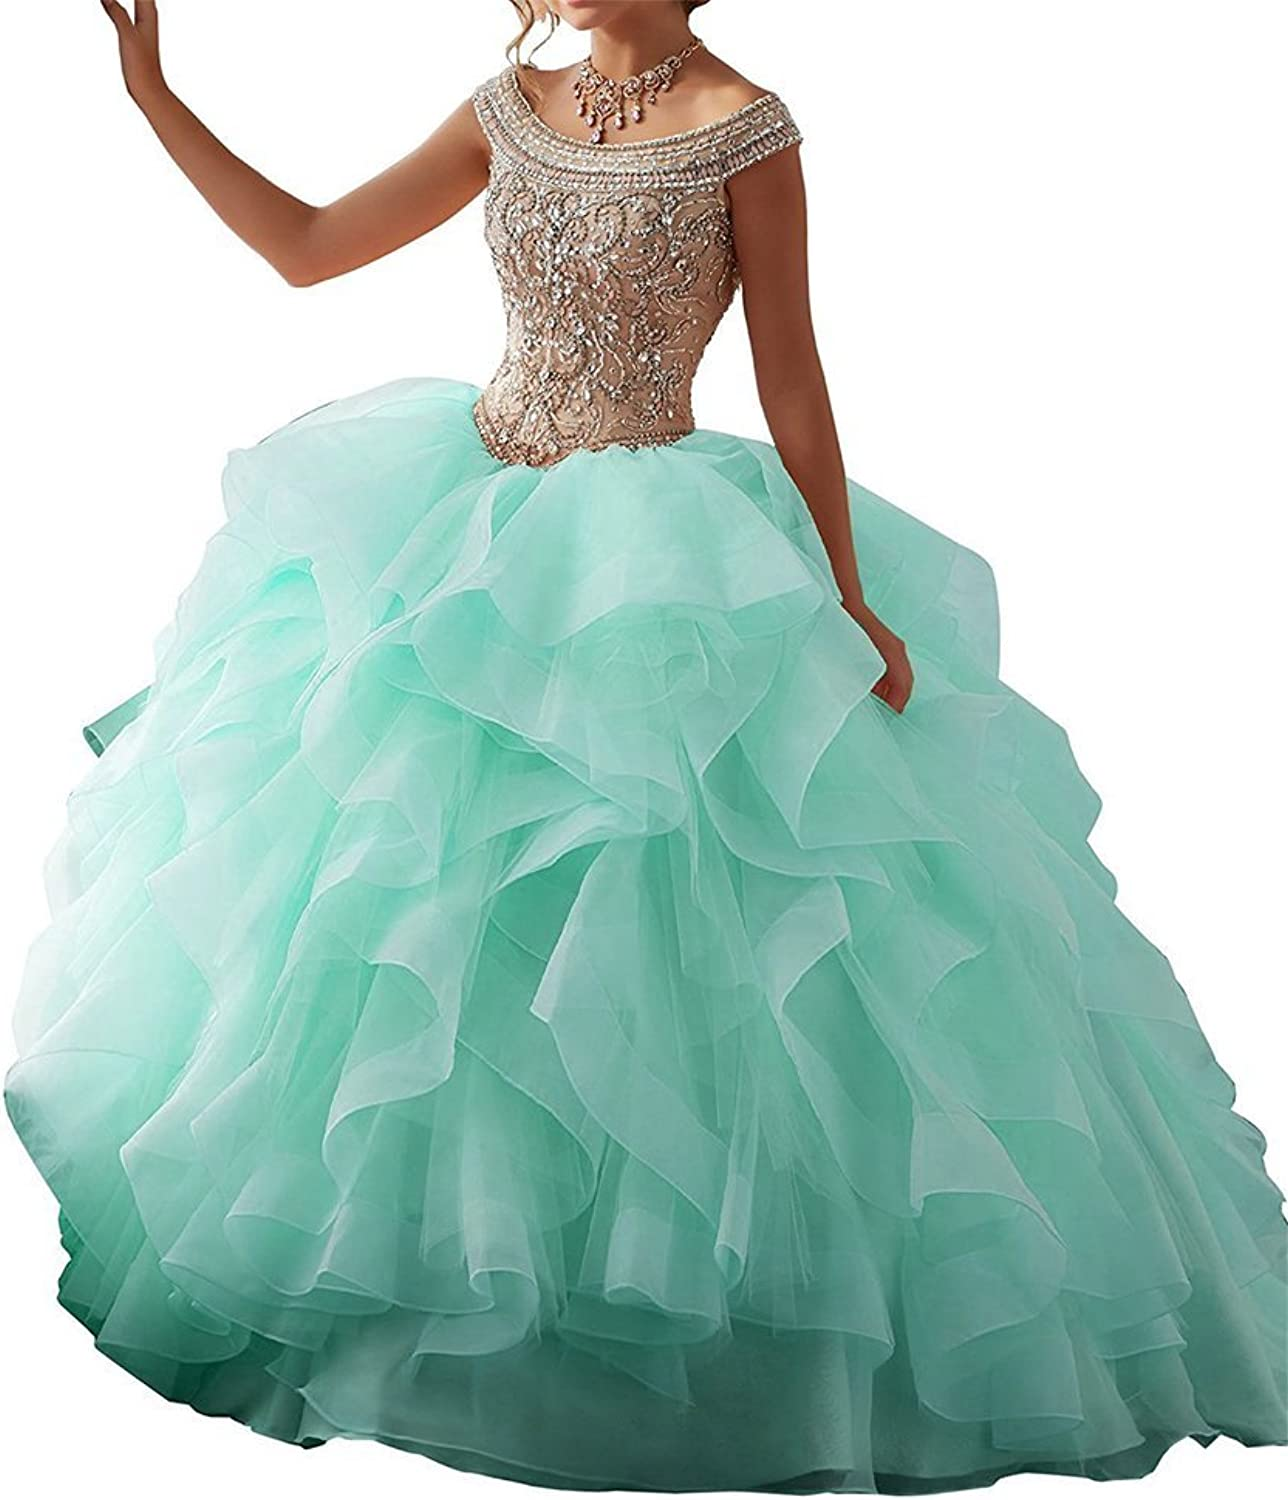 XSWPL Sweet 16 Ball Gowns OffShoulder Beaded Prom Quinceanera Dresses